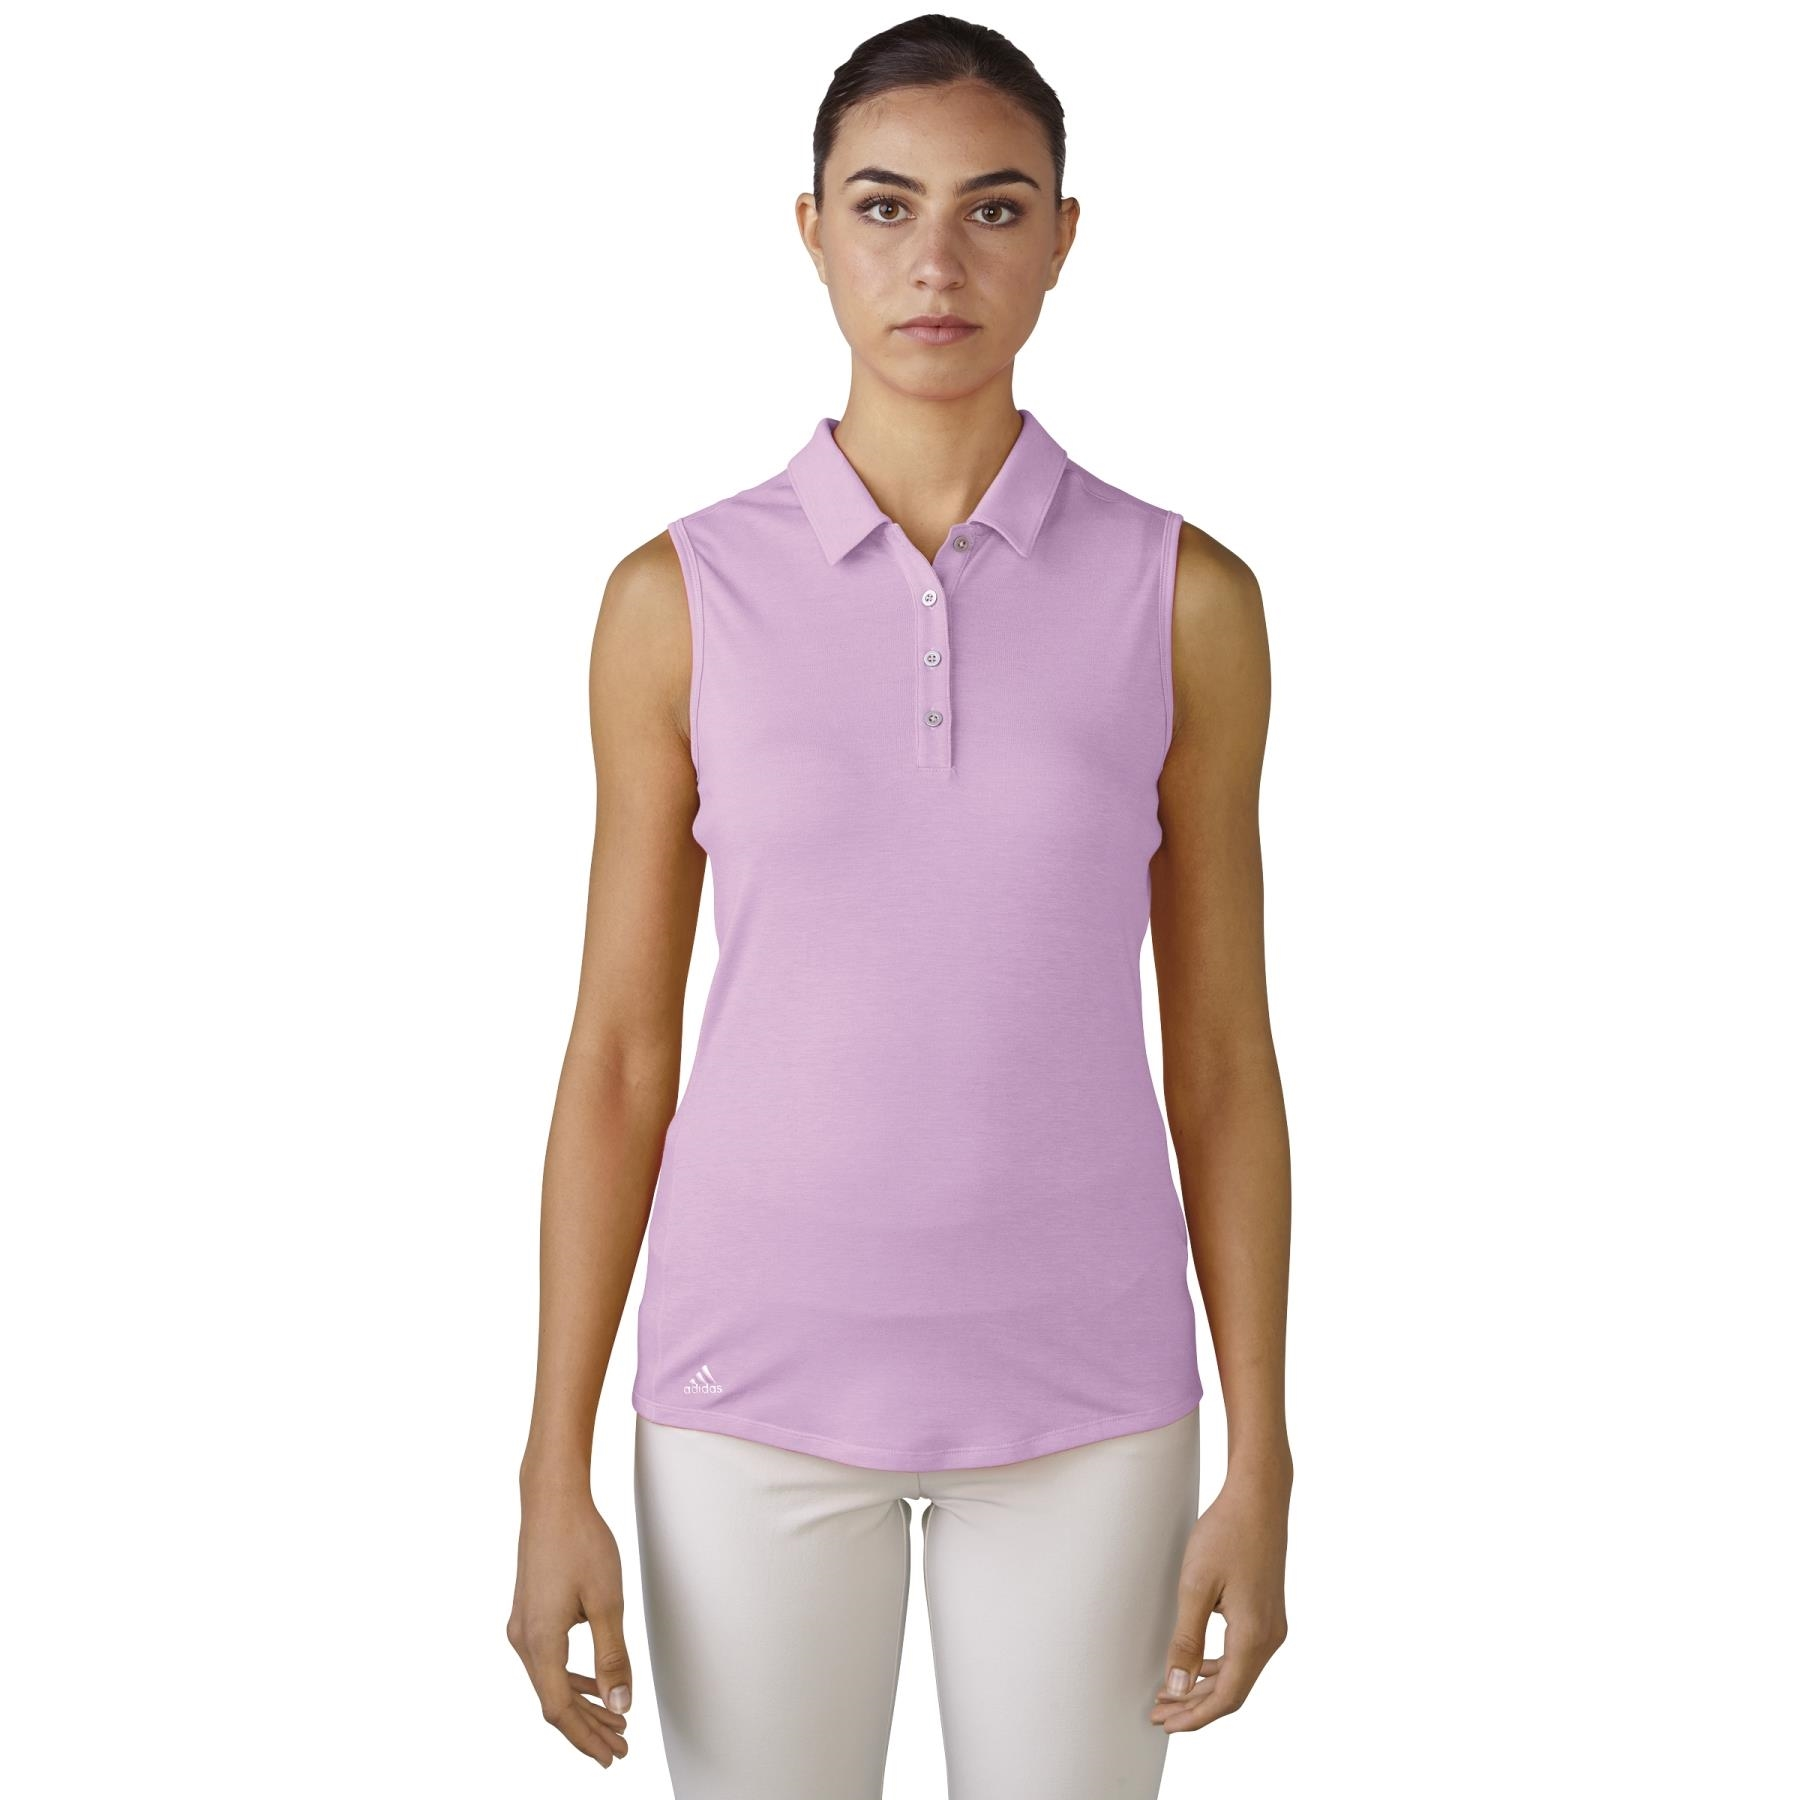 adidas Women's Climalite Essentials Heather Sleeveless Orchid Golf Polo